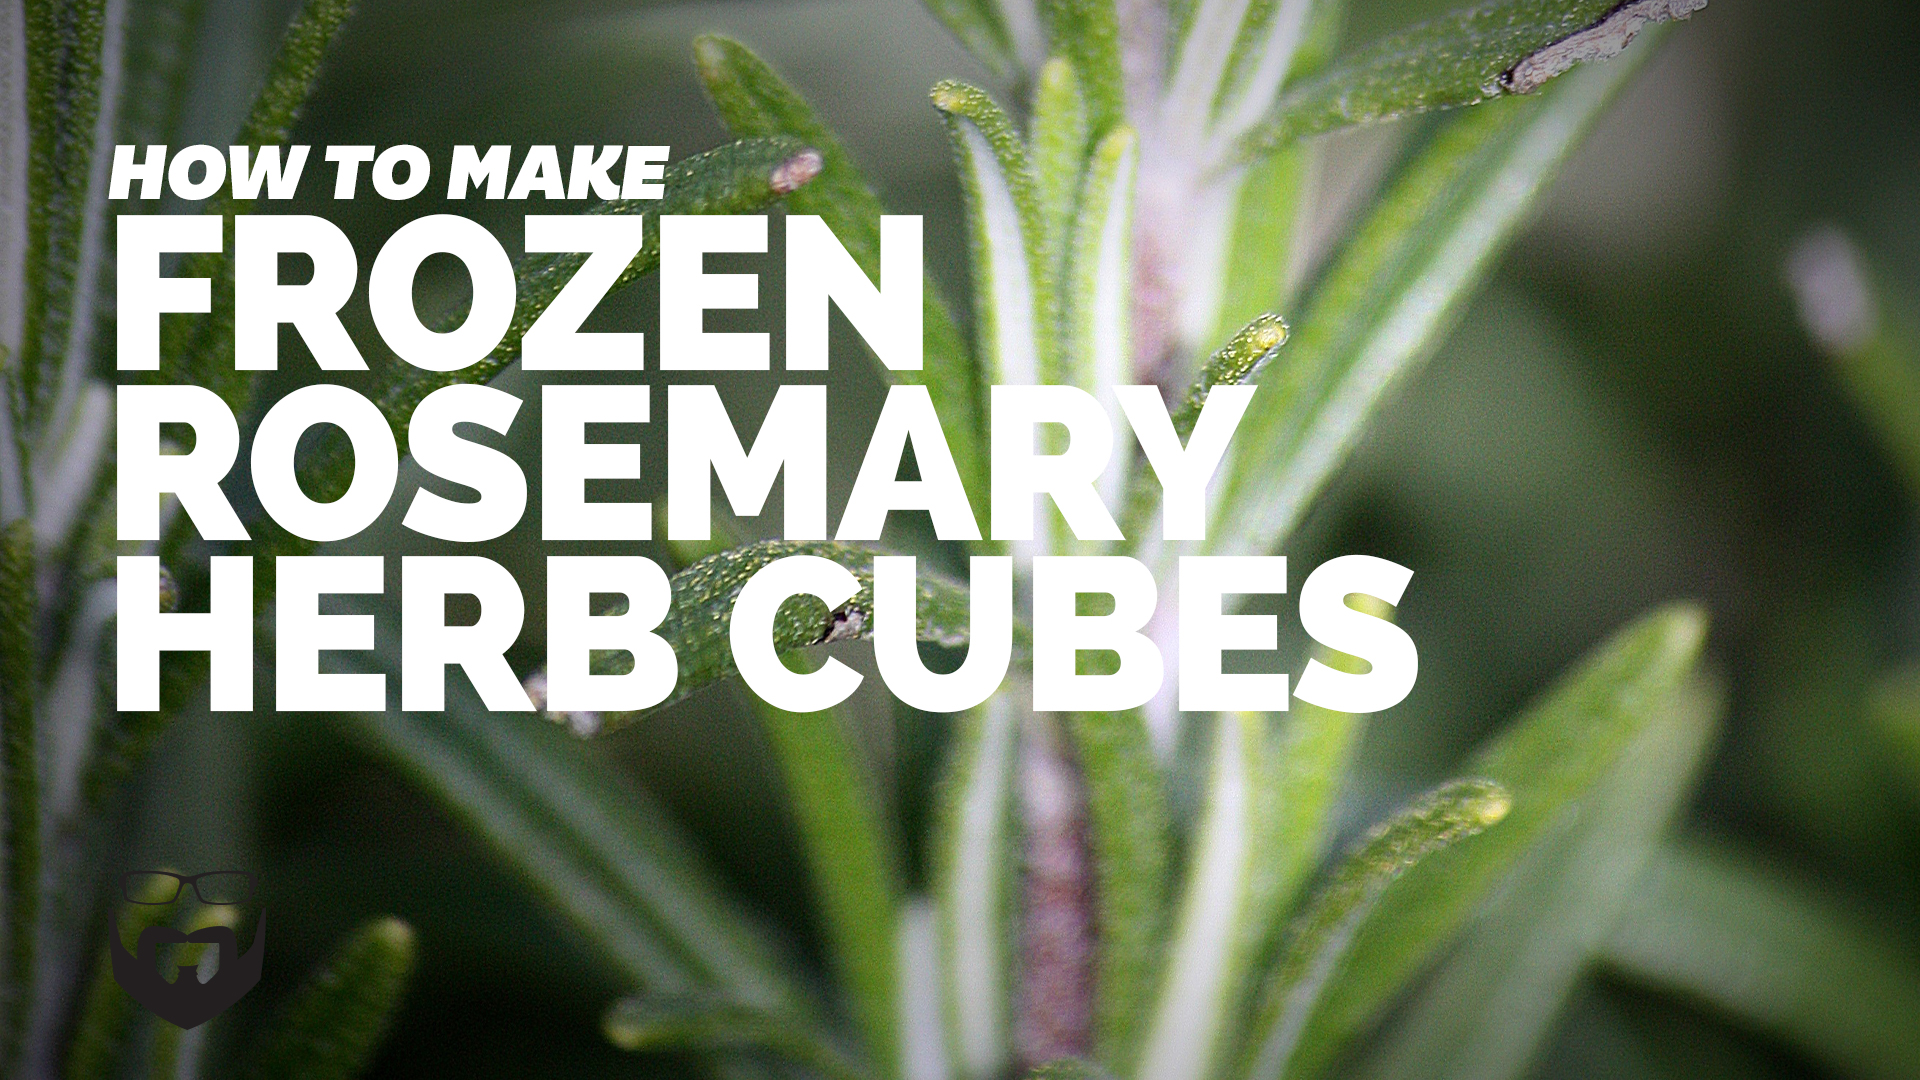 How to Make Frozen Herb Cubes with Rosemary-Video